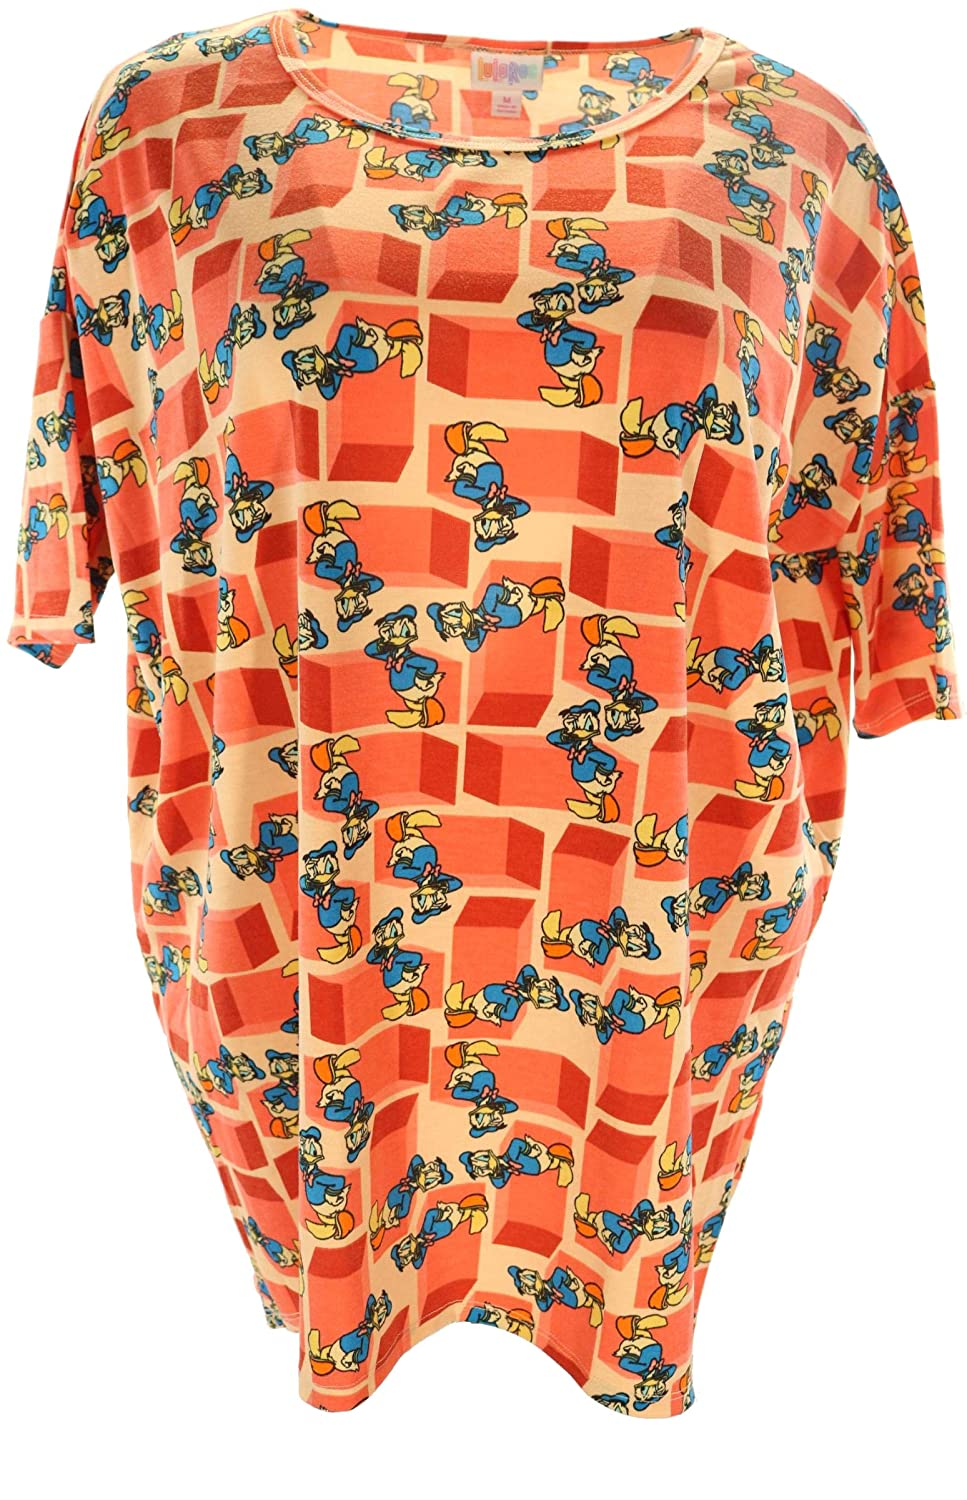 9a8d48f834b1d5 Lularoe Disney Irma (Medium) (Donald on Orange): Amazon.ca: Clothing &  Accessories